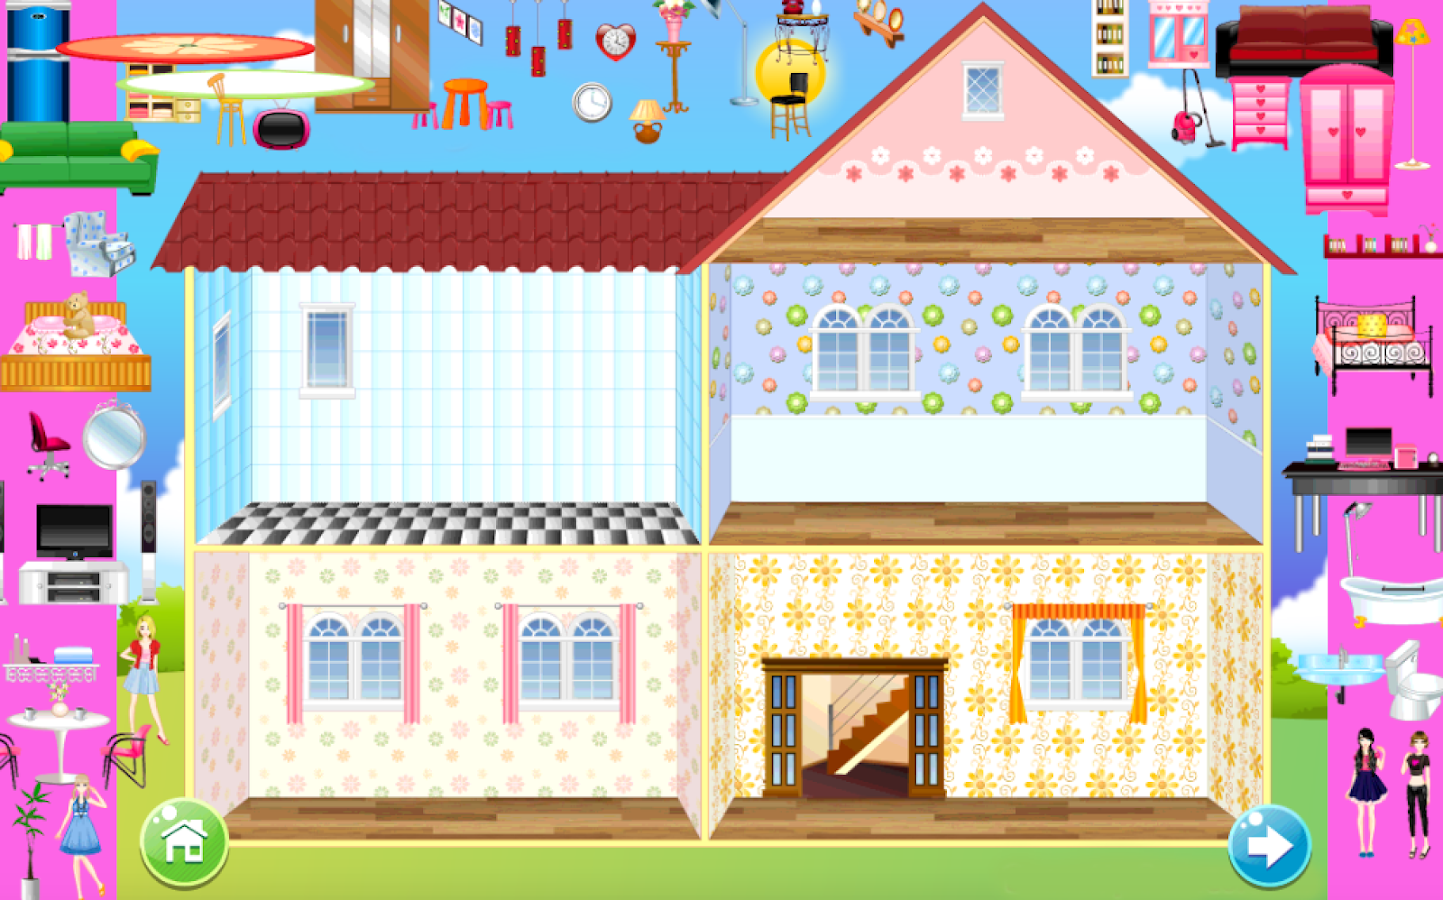 Home decoration games android apps on google play for Decoration games